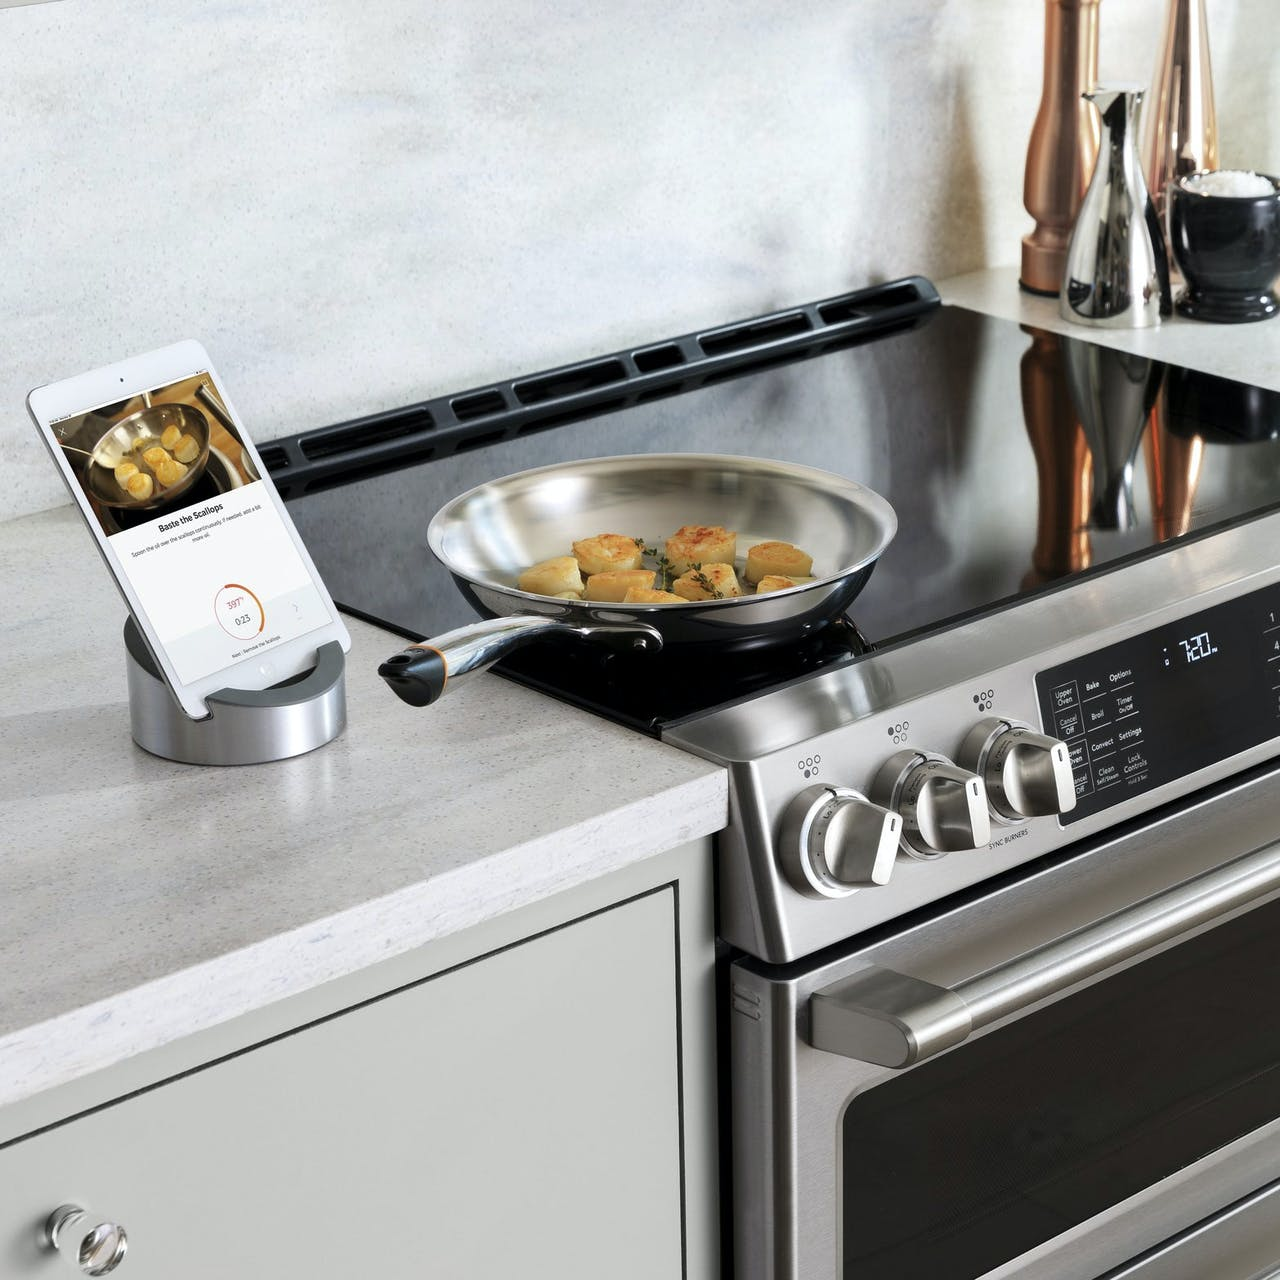 Induction range with pans on cooktop